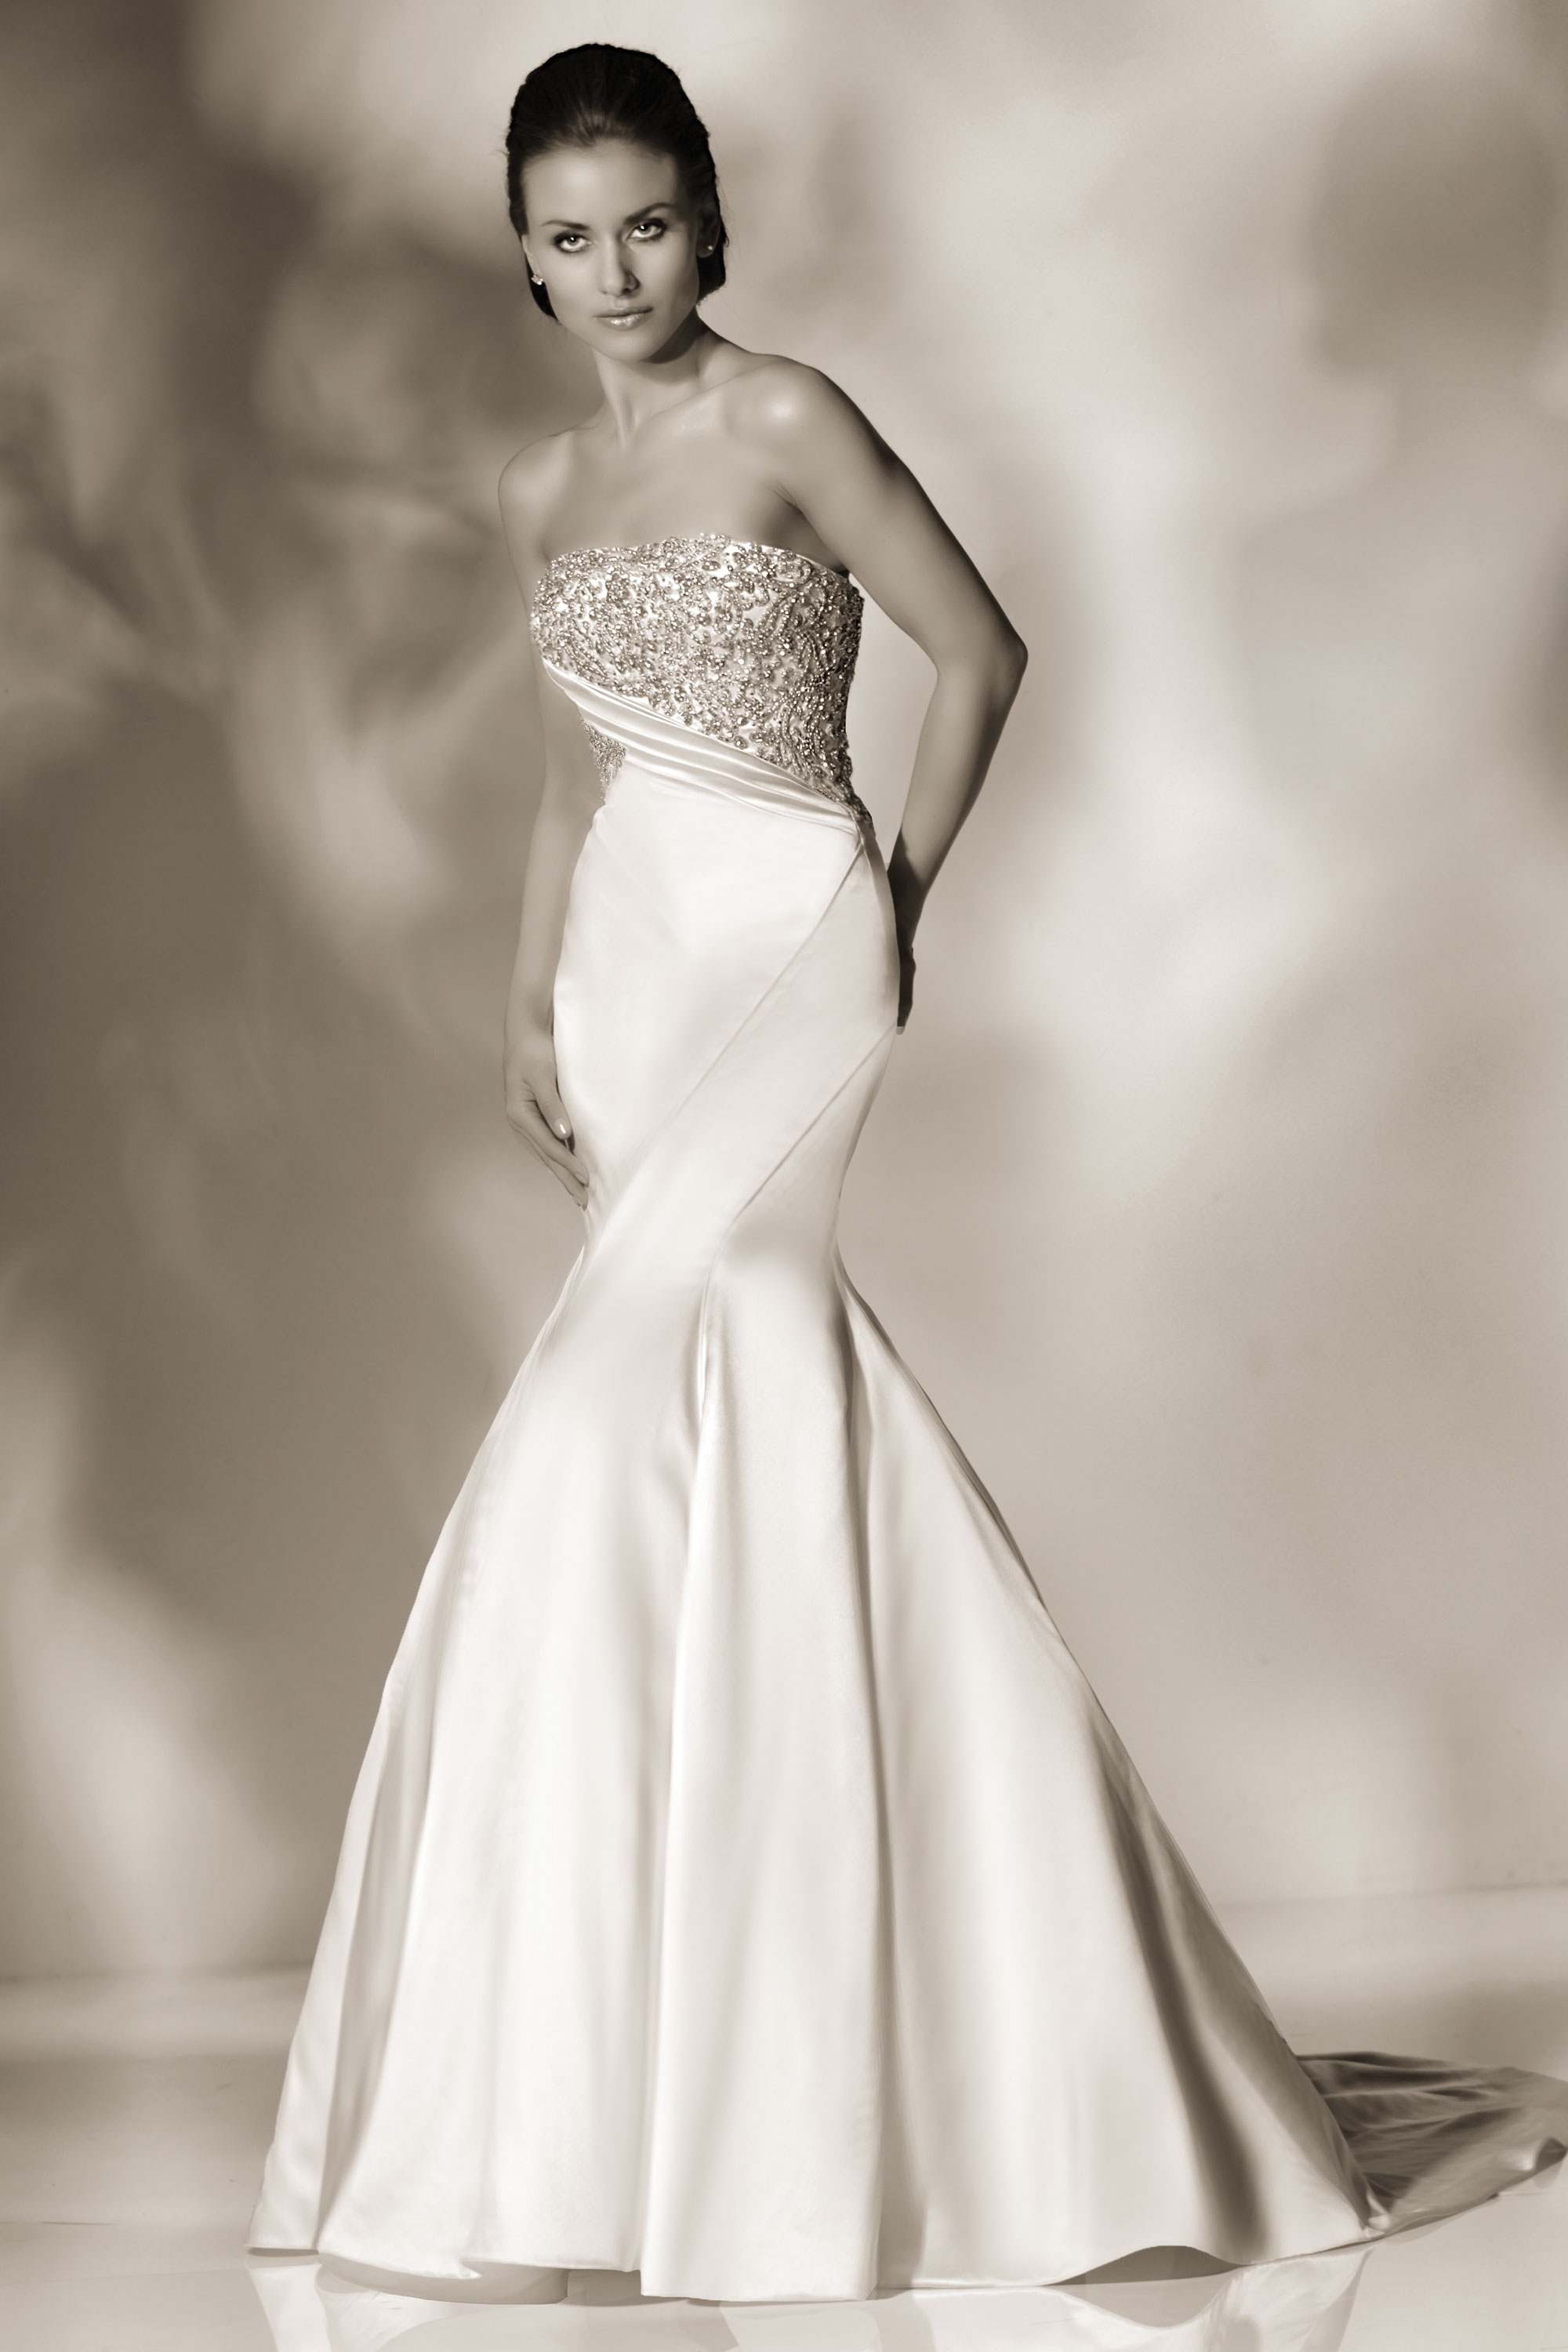 cristiano-lucci-wedding-dresses-22-01052014